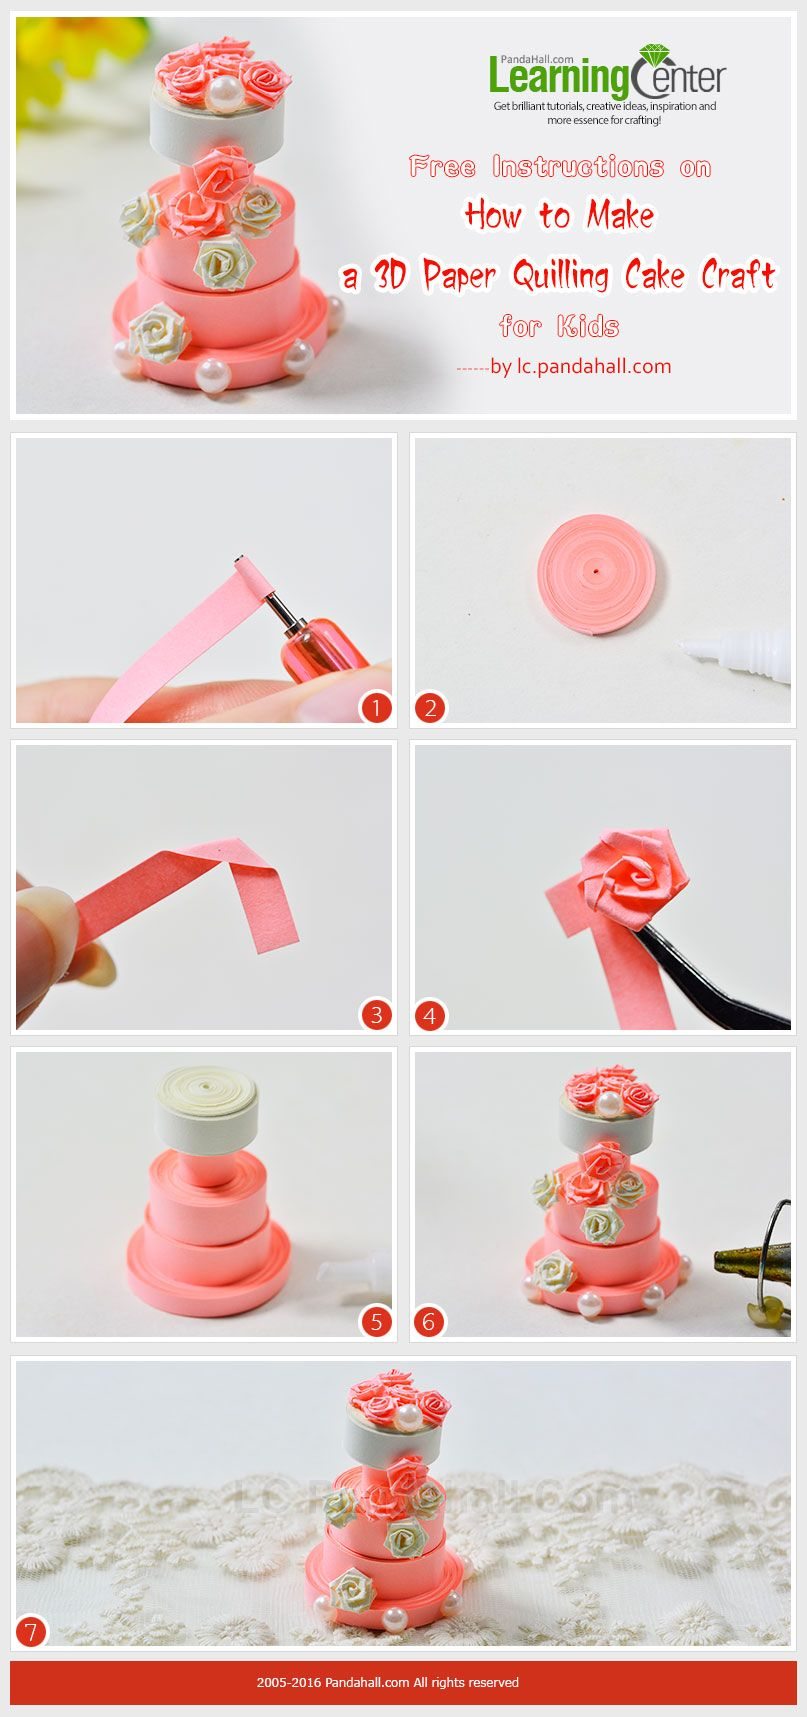 quilling instructions for kids